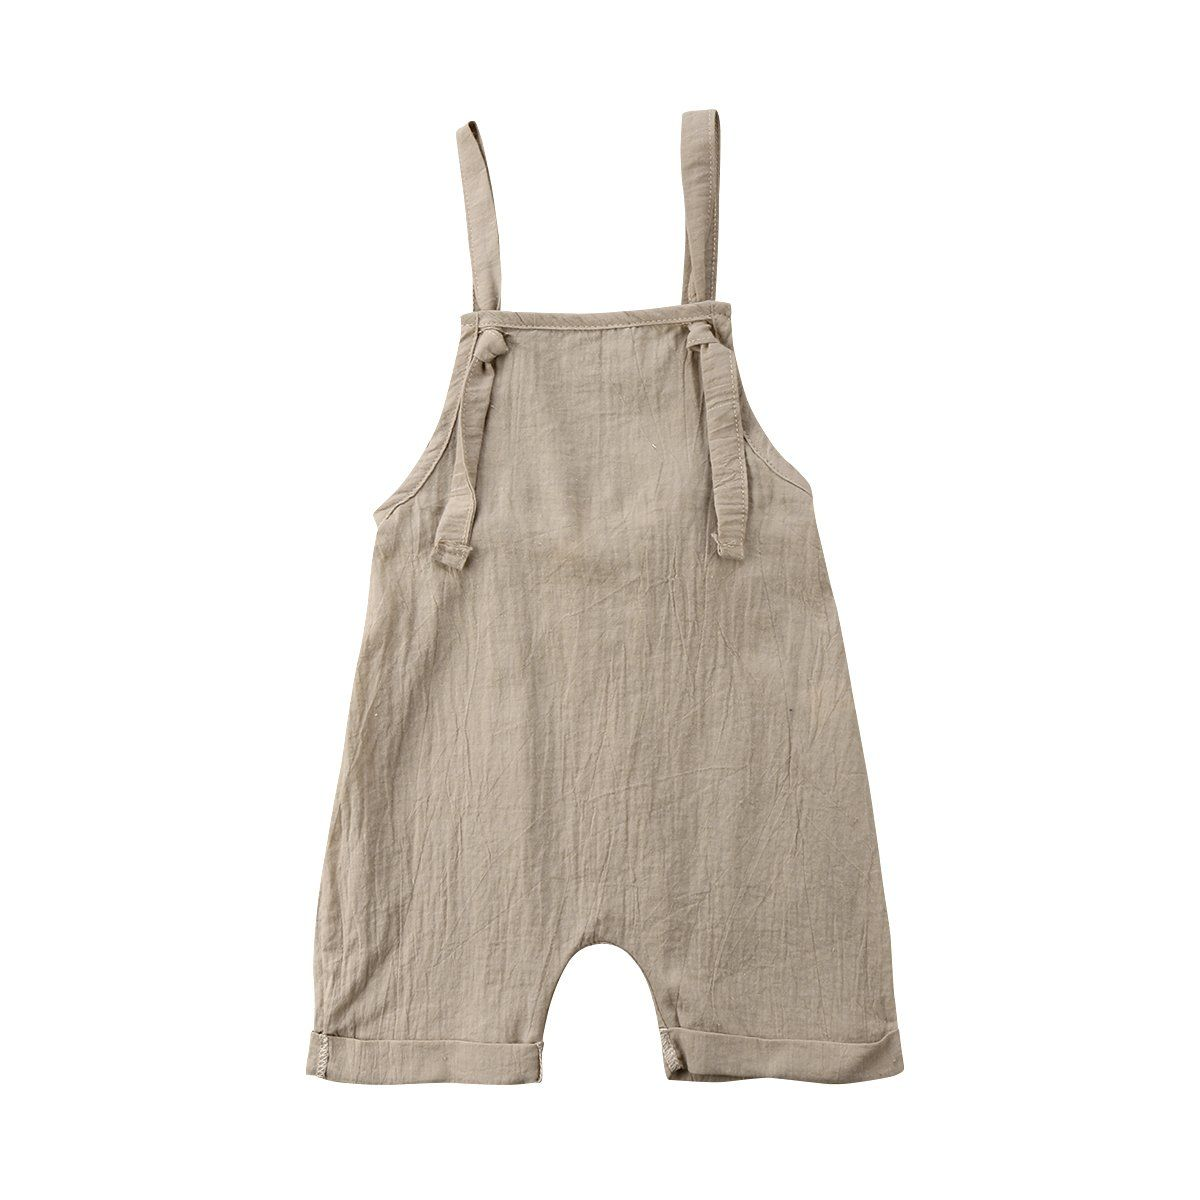 UK Toddler Baby Girl Summer Dungarees Bib Pants Romper Overalls Outfit Clothes